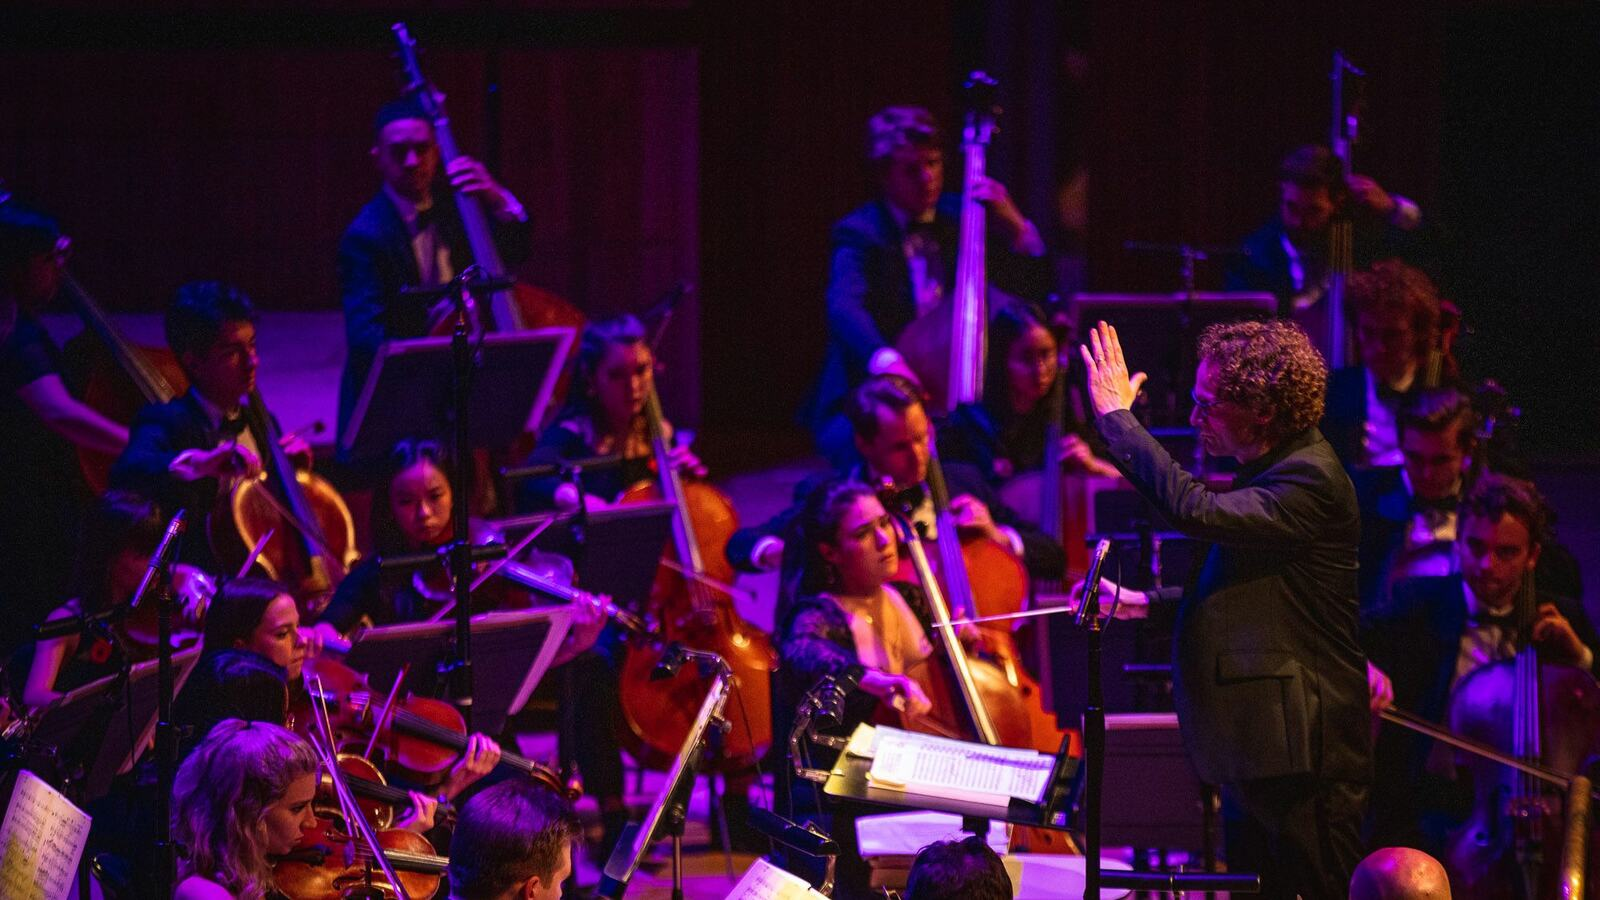 London Philharmonic Orchestra performing on stage